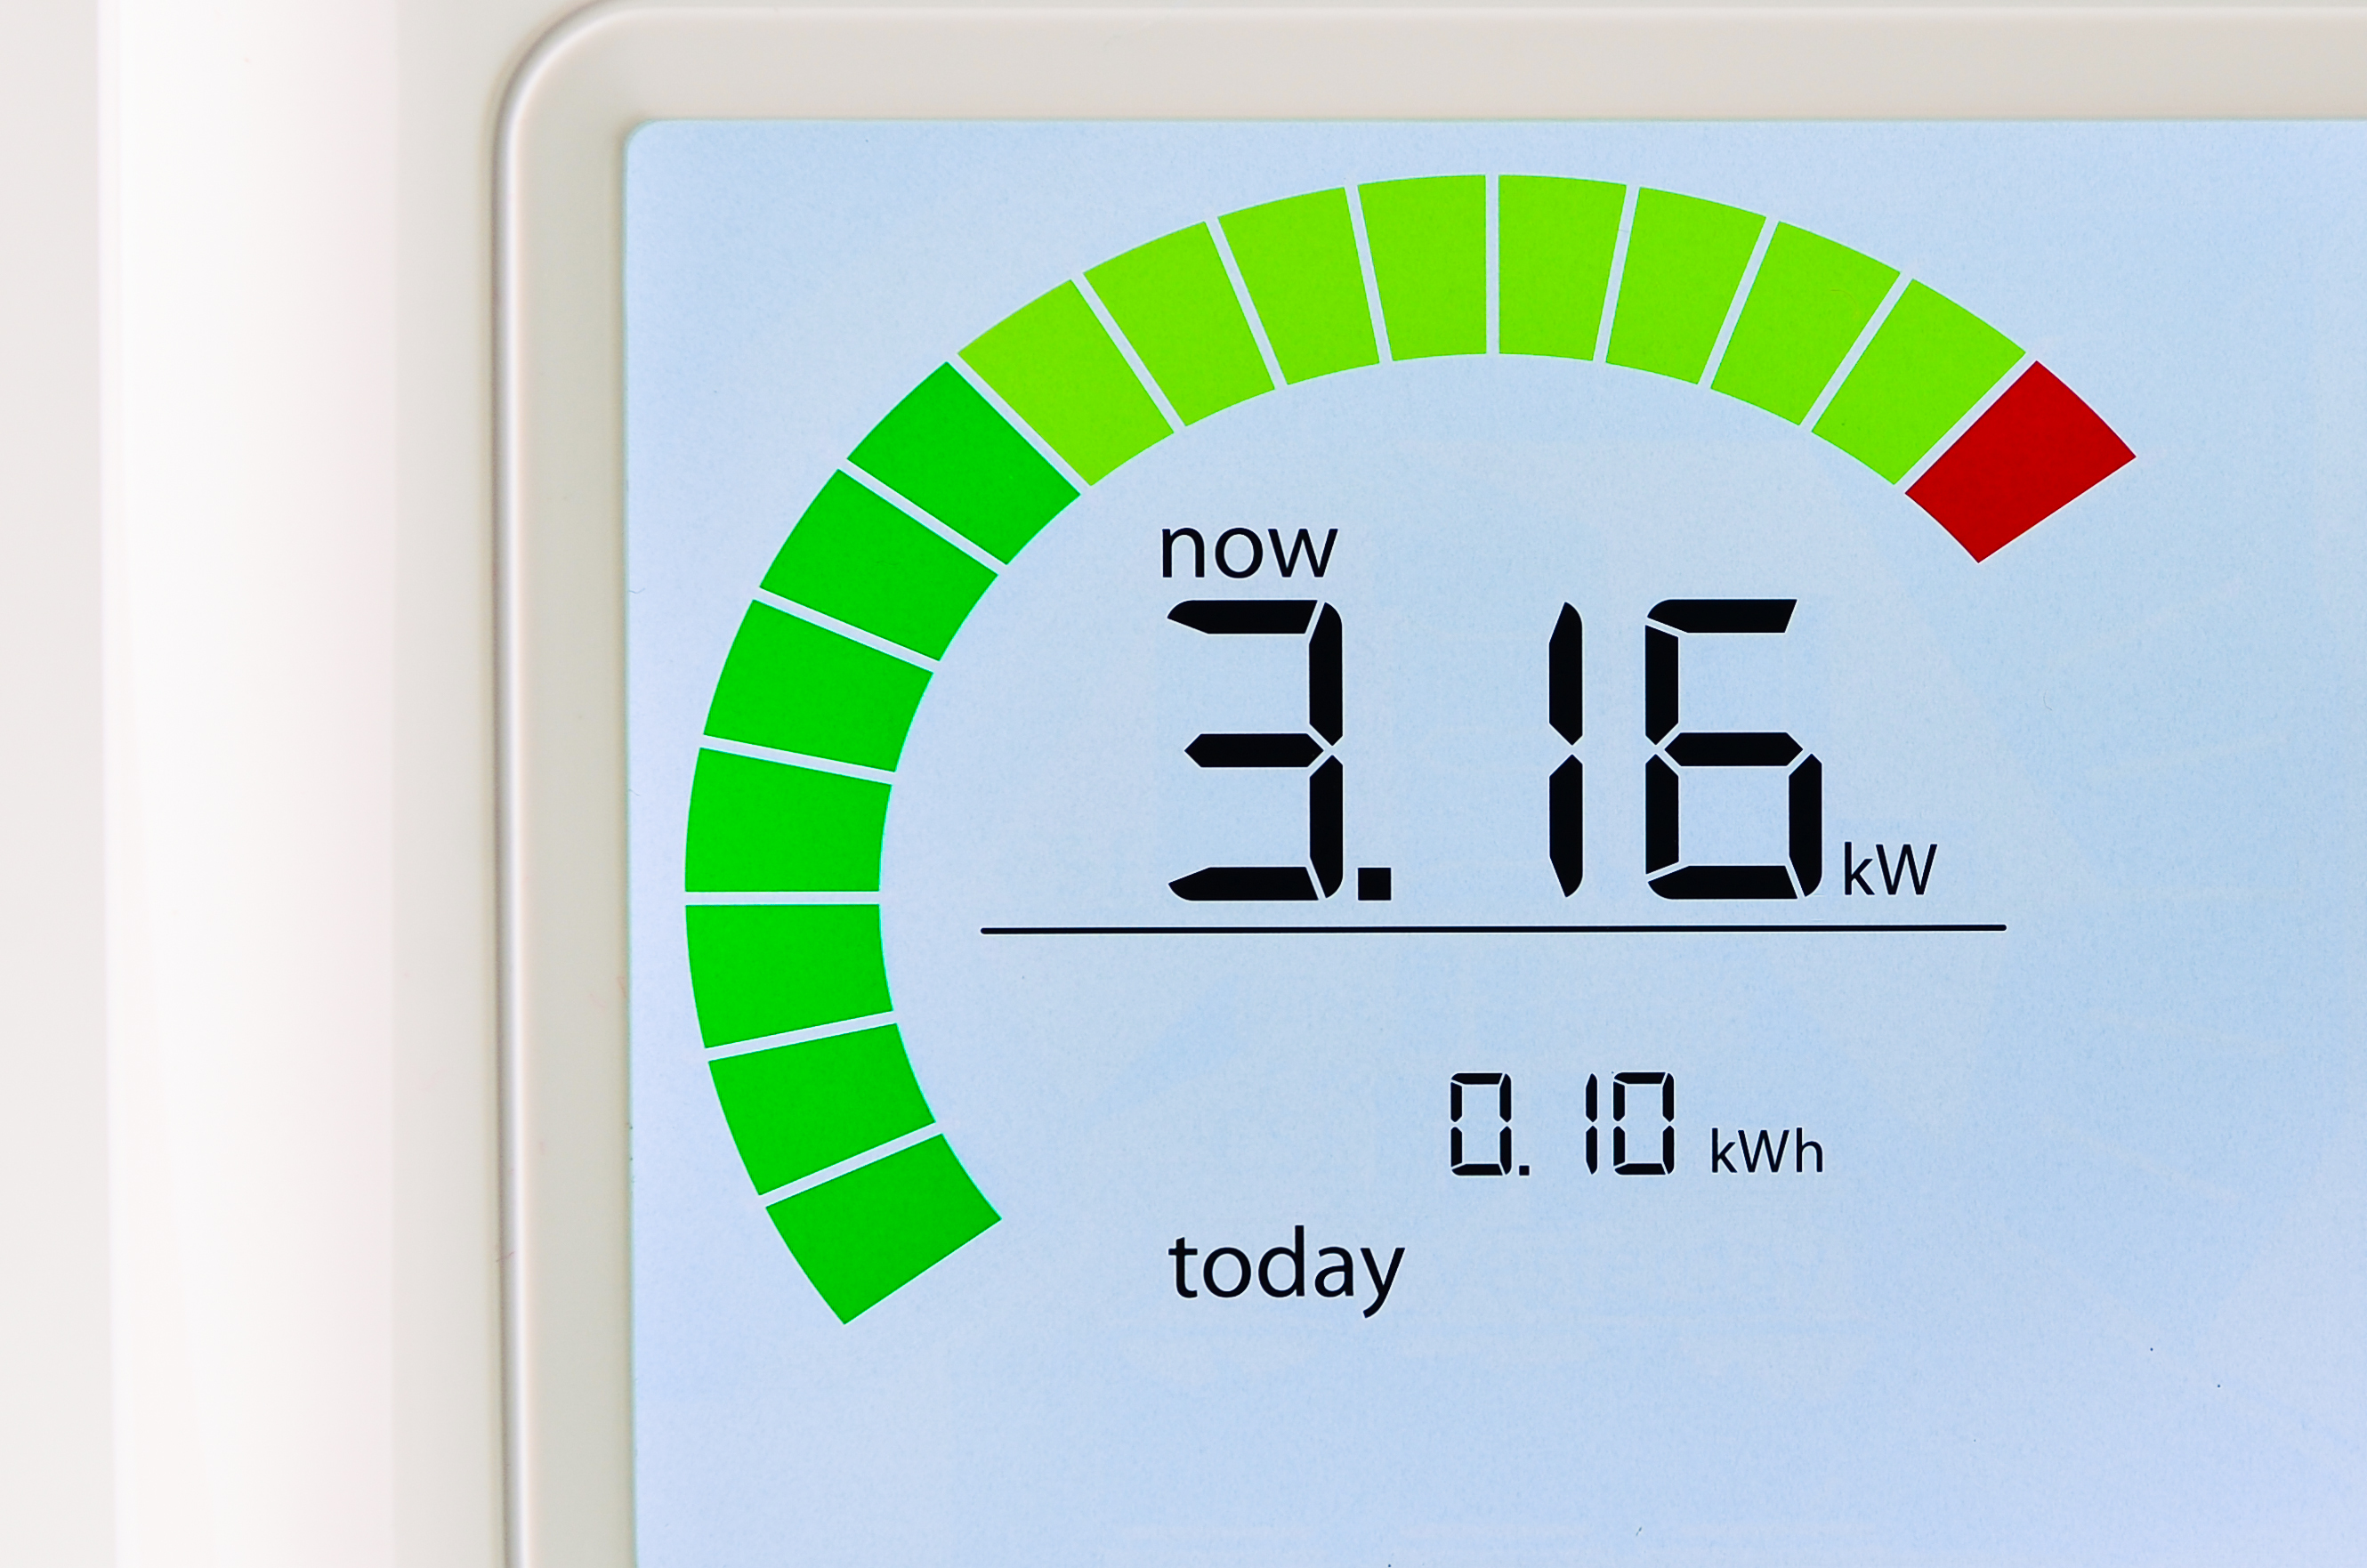 Smart metering and district heating